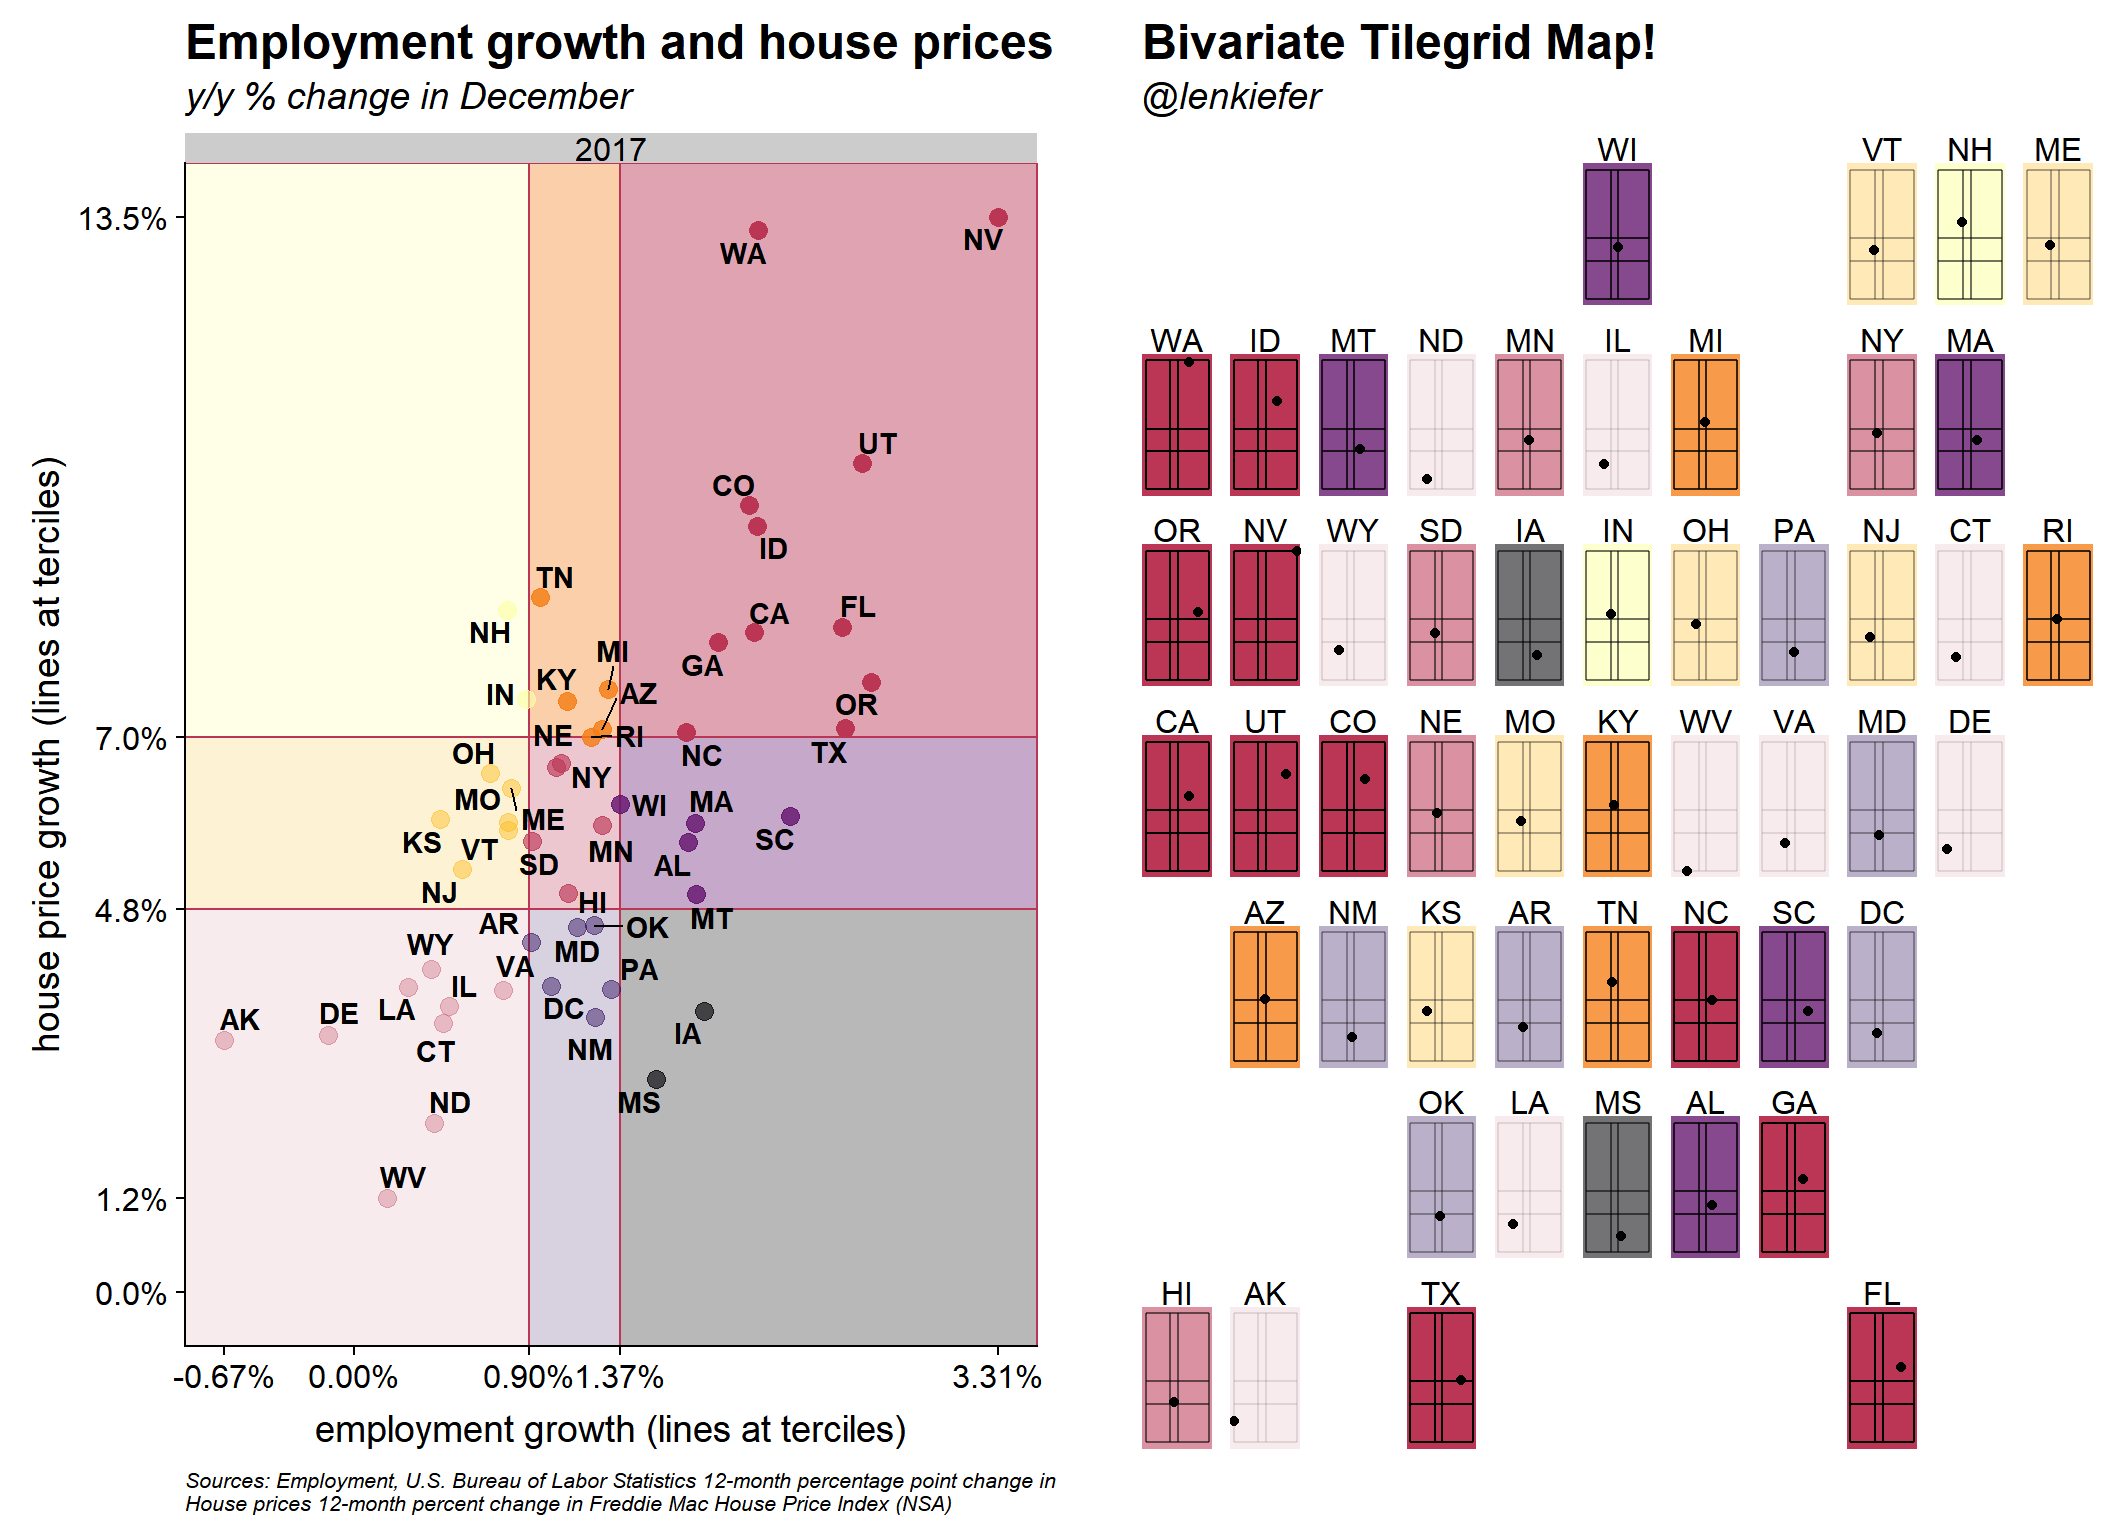 Employment growth and house price trends len kiefer panelidjor elementlinecolour na panelidminor elementlinecolour na labsxytitlebivariate tilegrid map buycottarizona Gallery